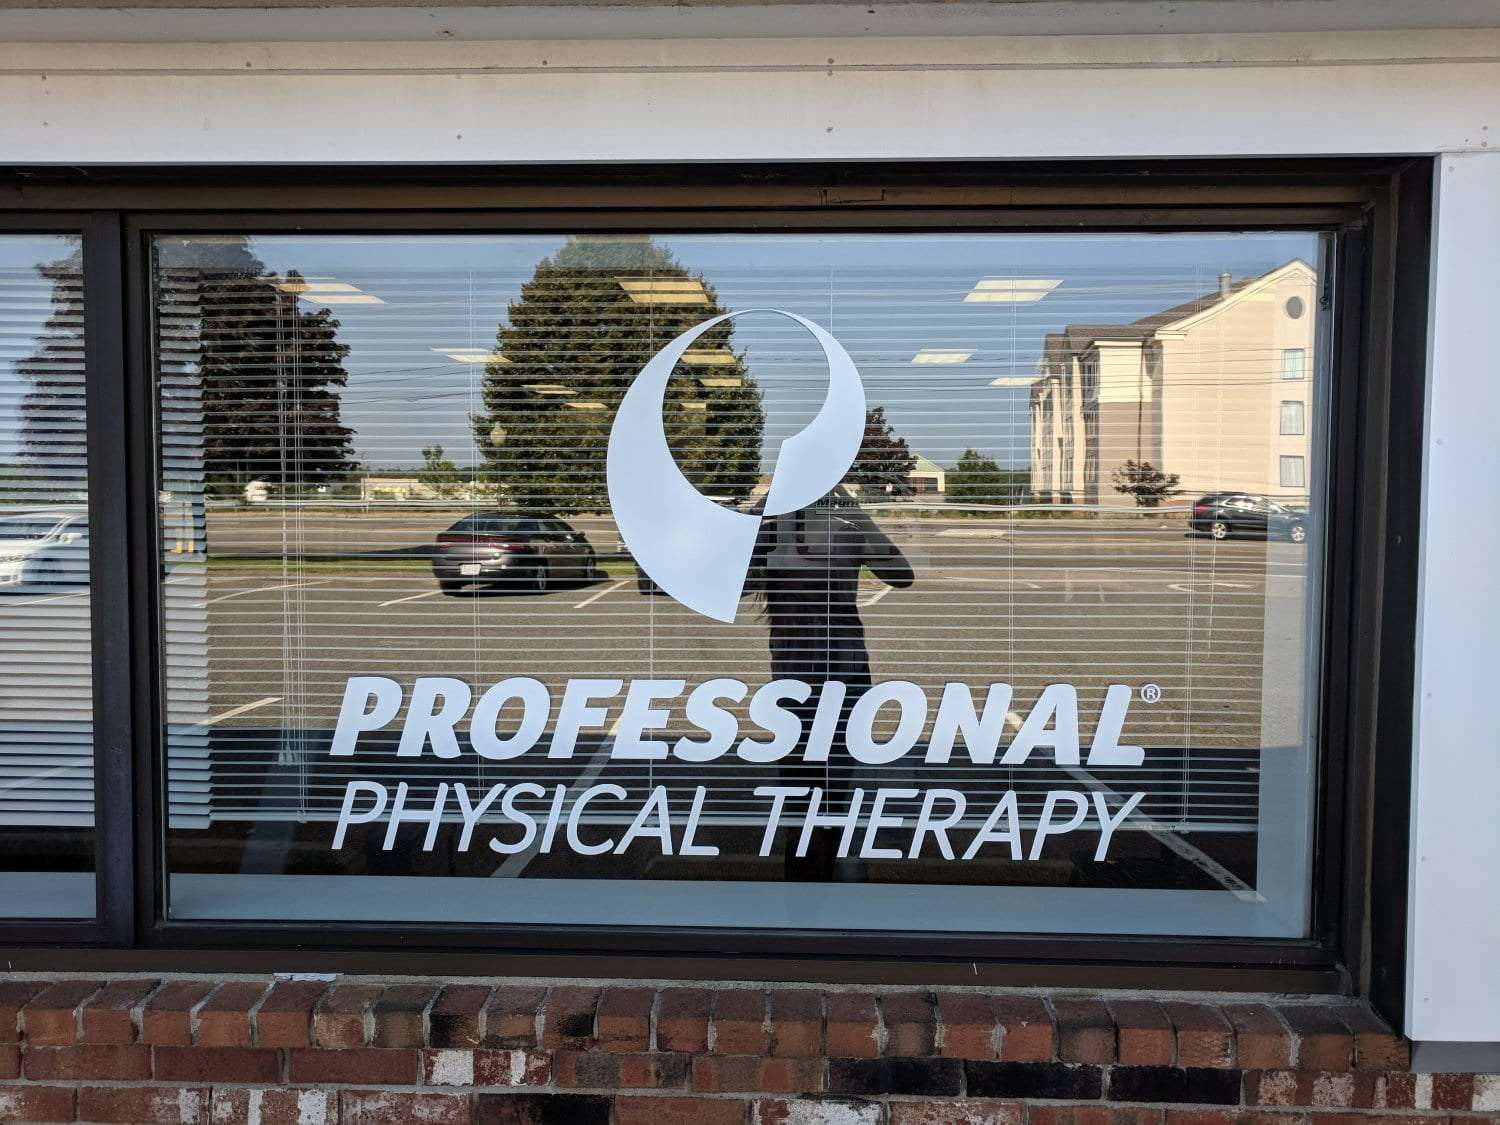 This is an image of the Professional Physical Therapy sign on the window at our clinic in Plymouth, Massachusetts.